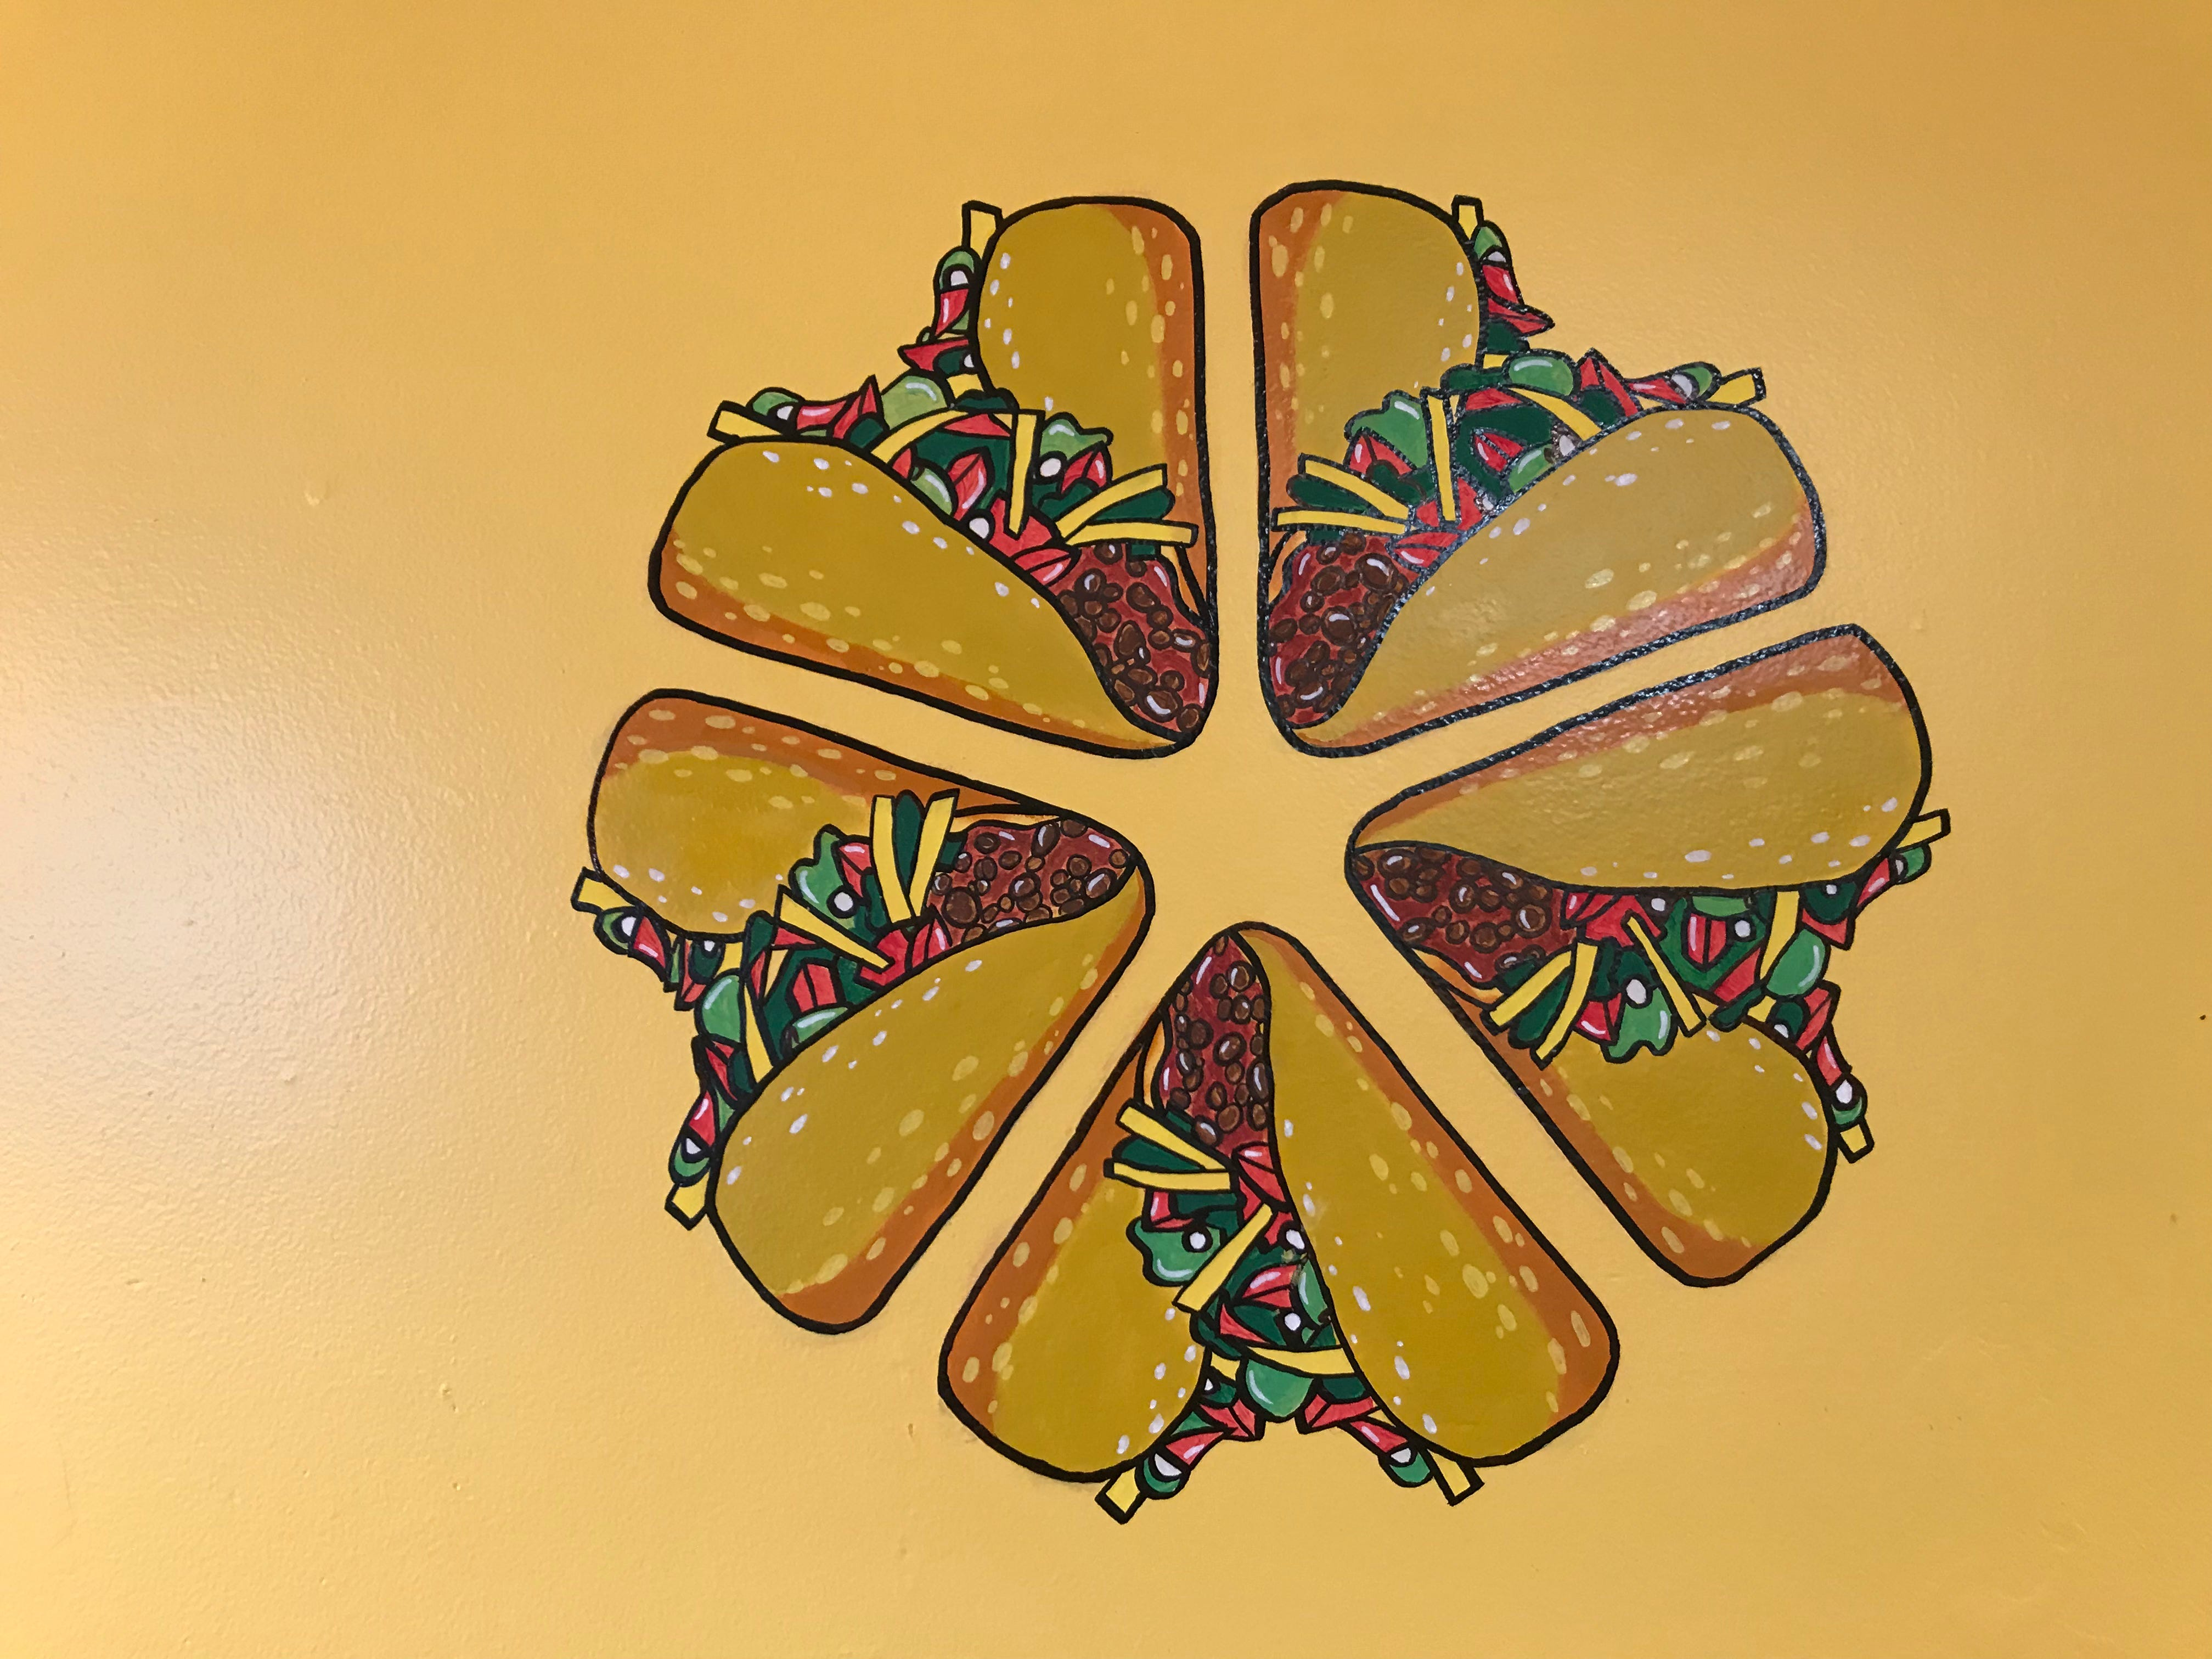 Tacos form the Rochester logo in this illustration by Derlisrael Rita.